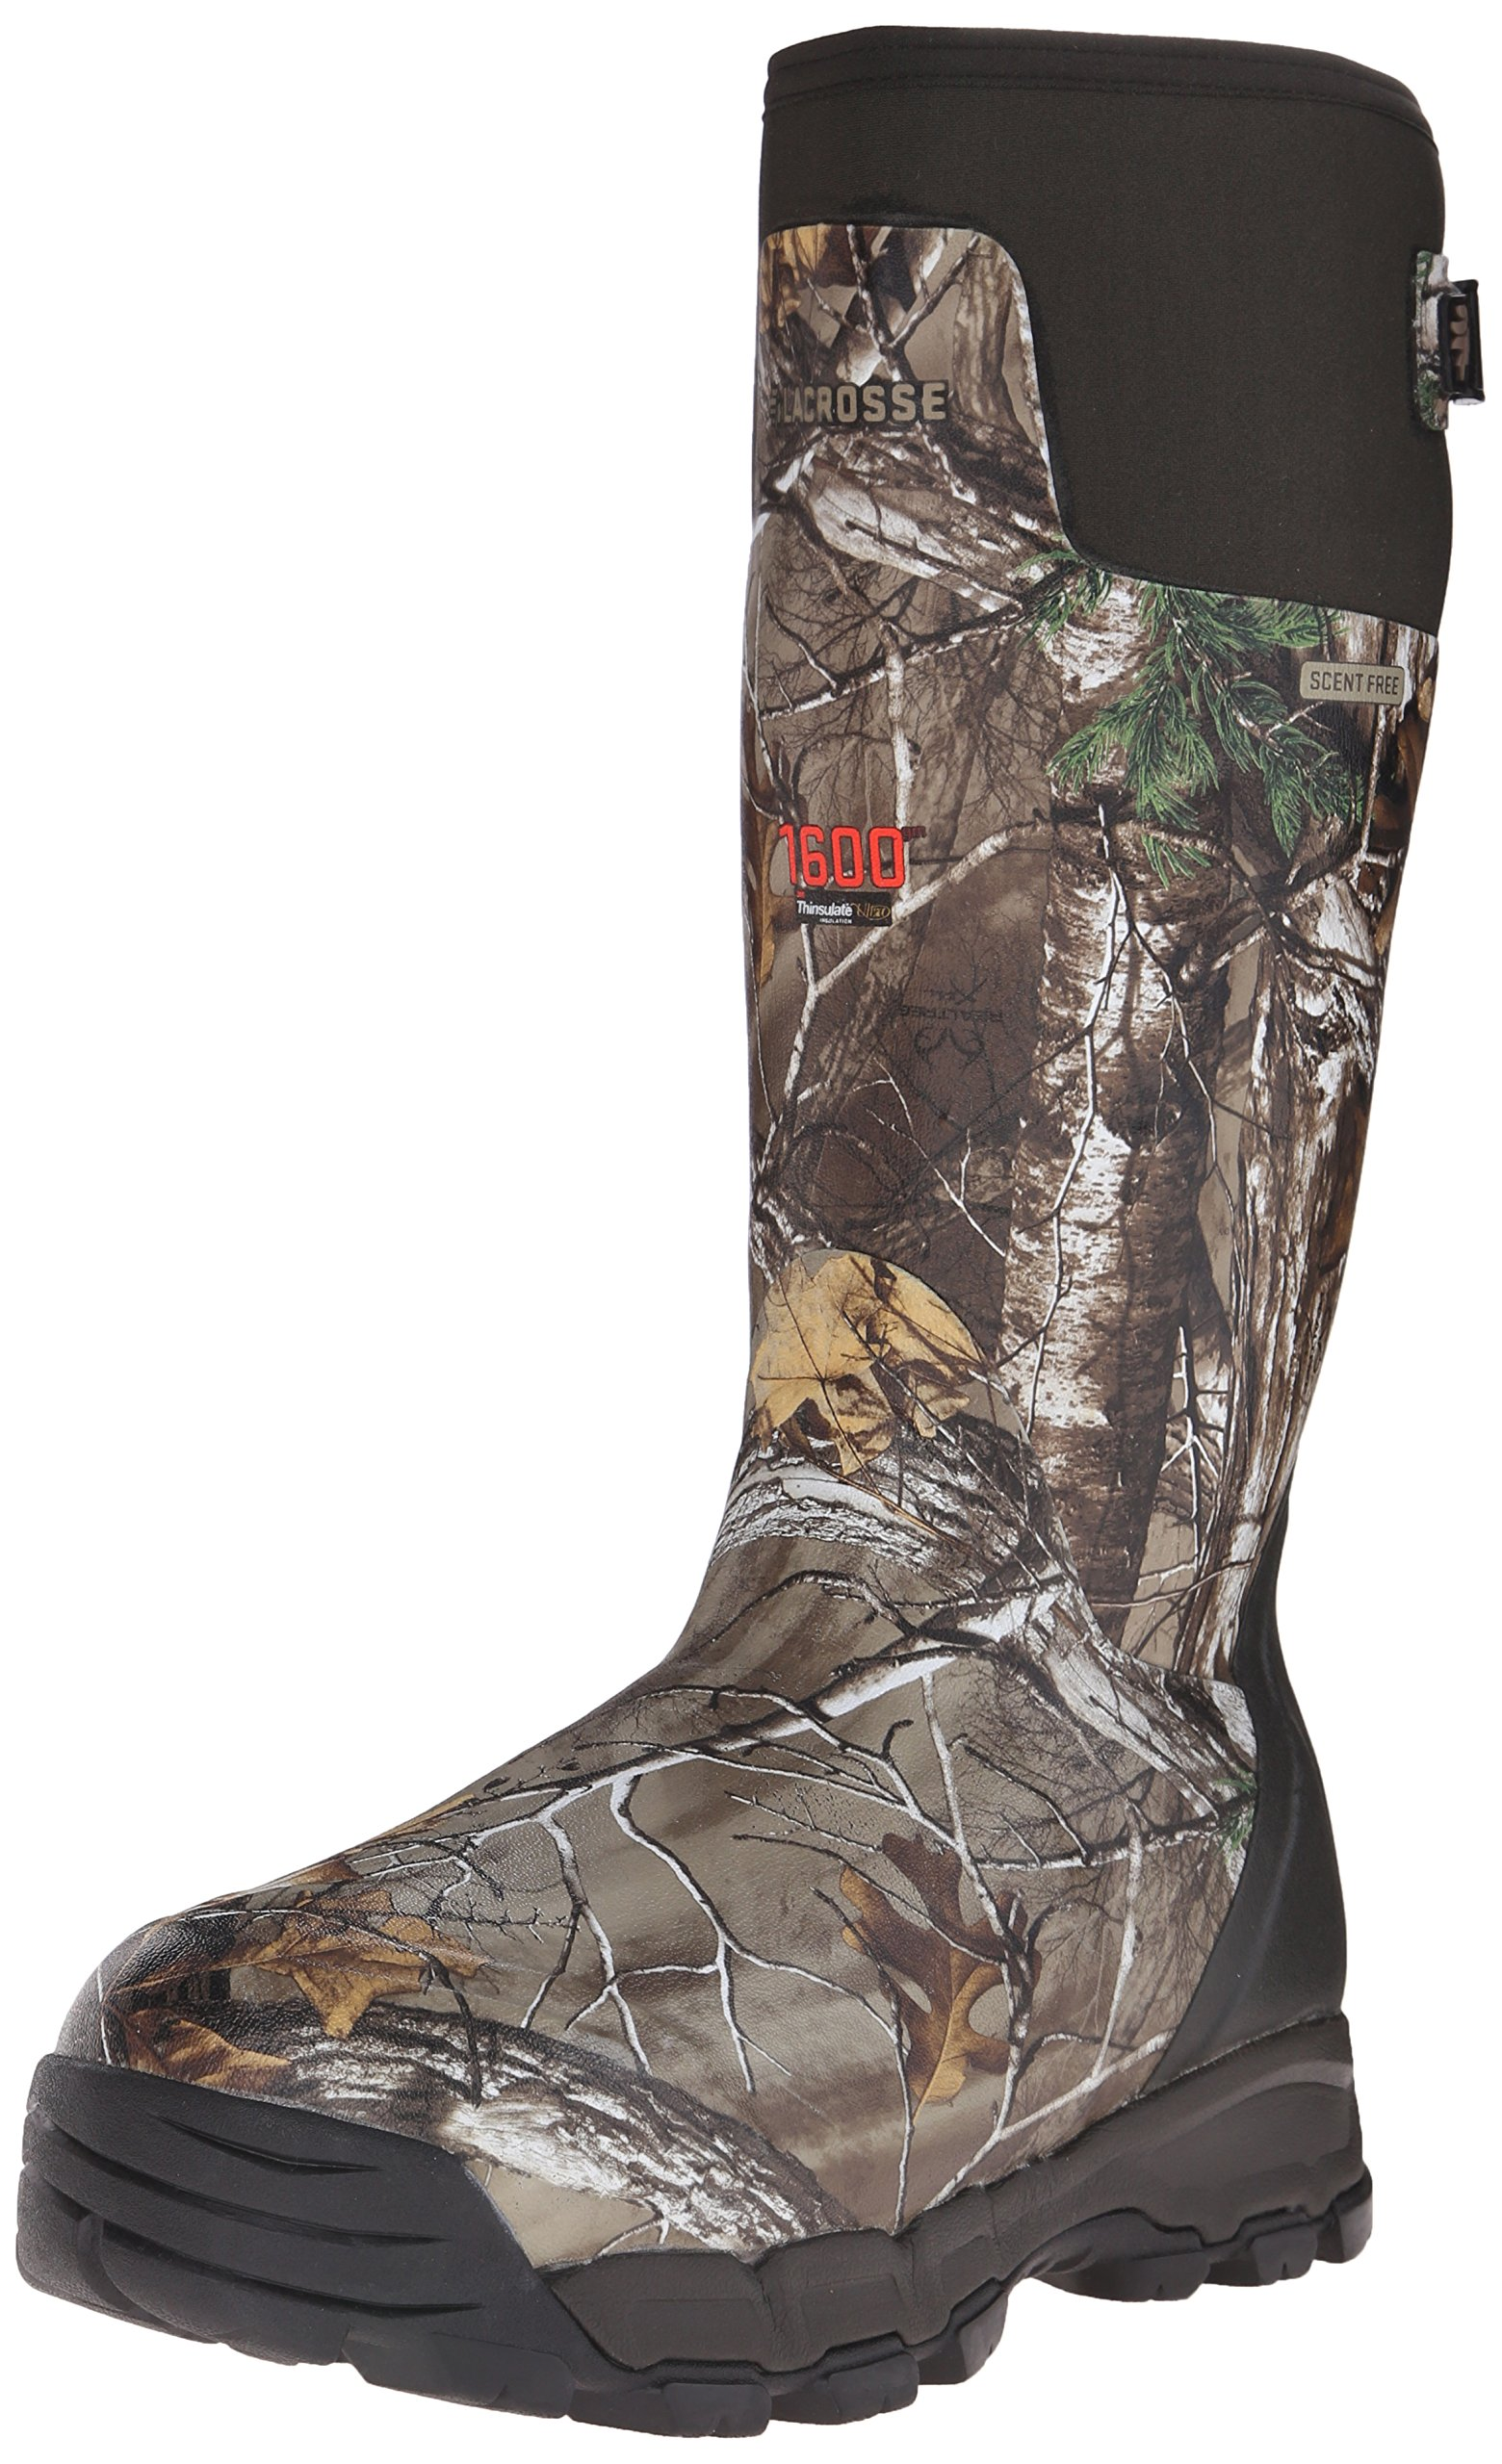 "LaCrosse Men's Alphaburly Pro 18"" 1600G Hunting Boot,Realtree Xtra,11 M US by Lacrosse (Image #1)"